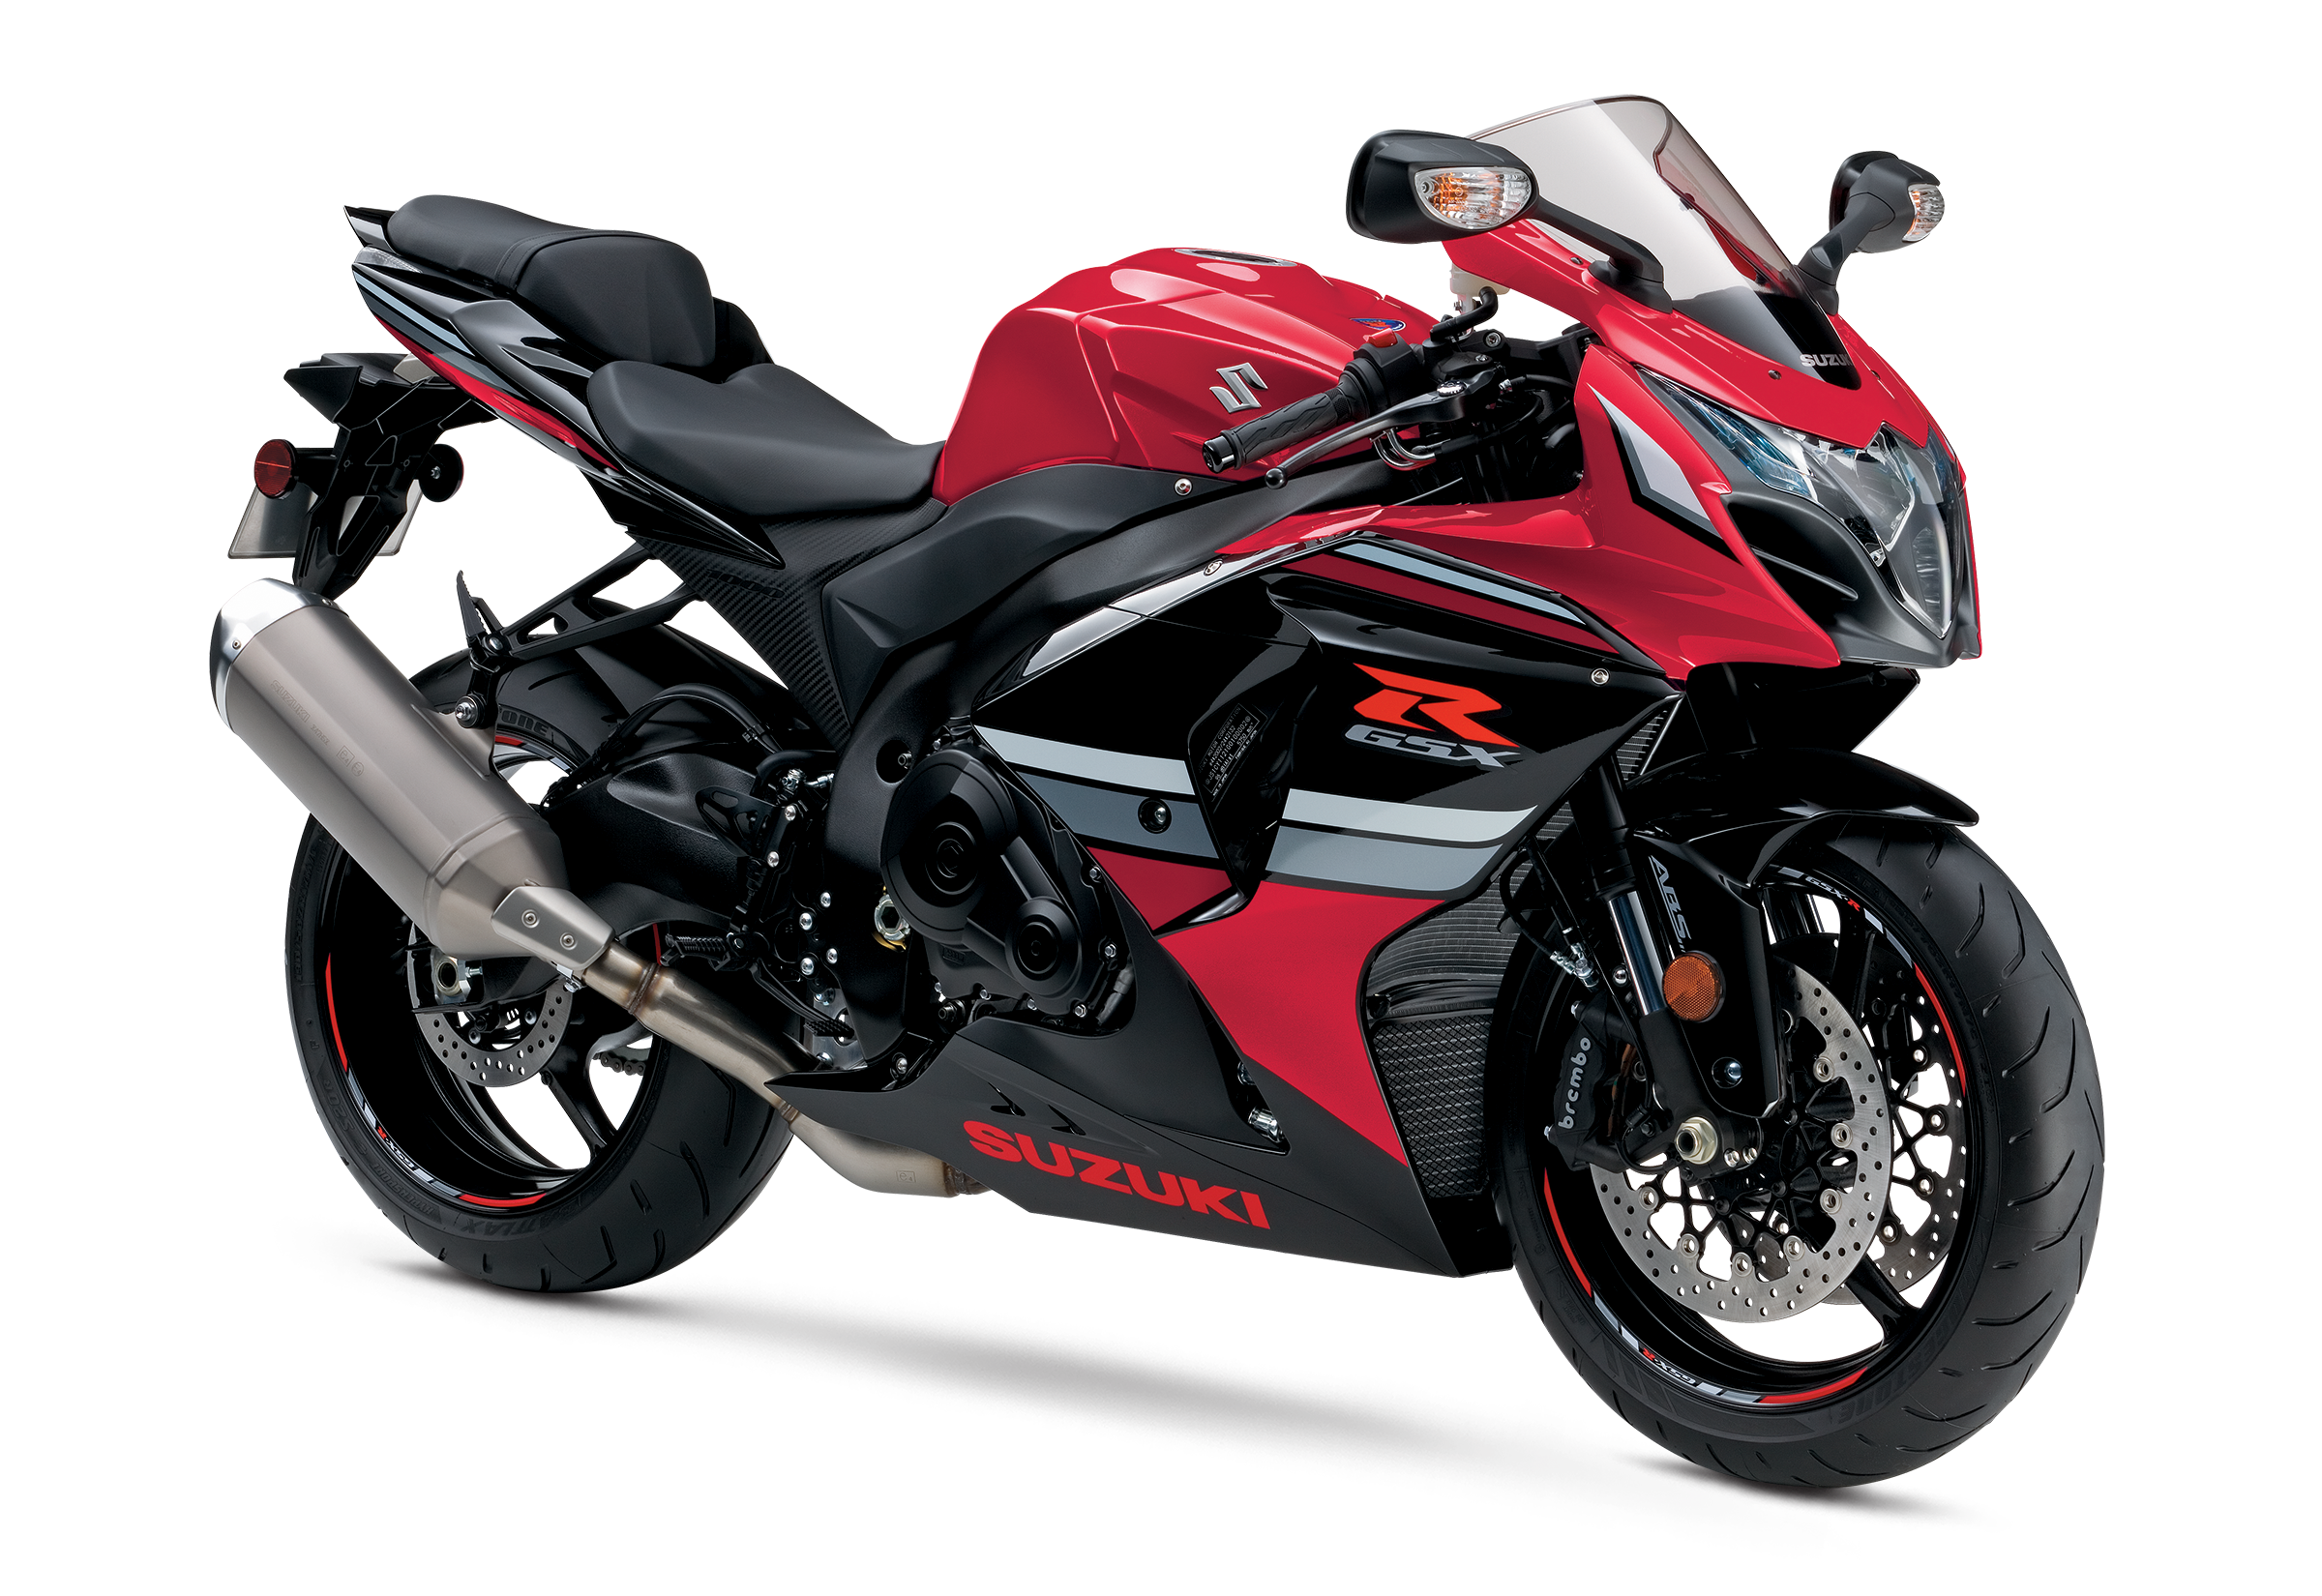 Suzuki unveils red black 30 year commemorative edition 2016 gsx r1000 at indy motogp